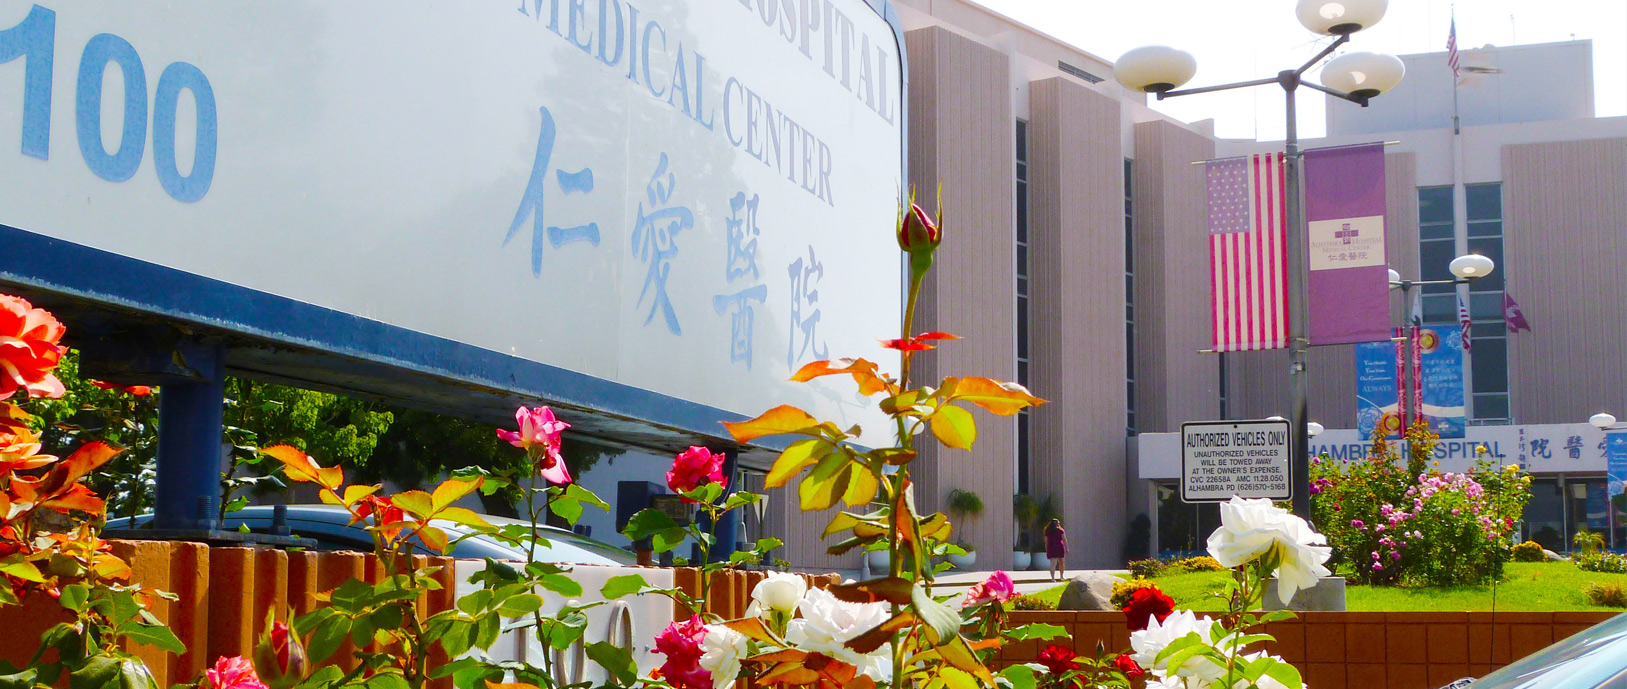 Alhambra Hospital Medical Center exterior: flowers are blooming in front of the hospital sign